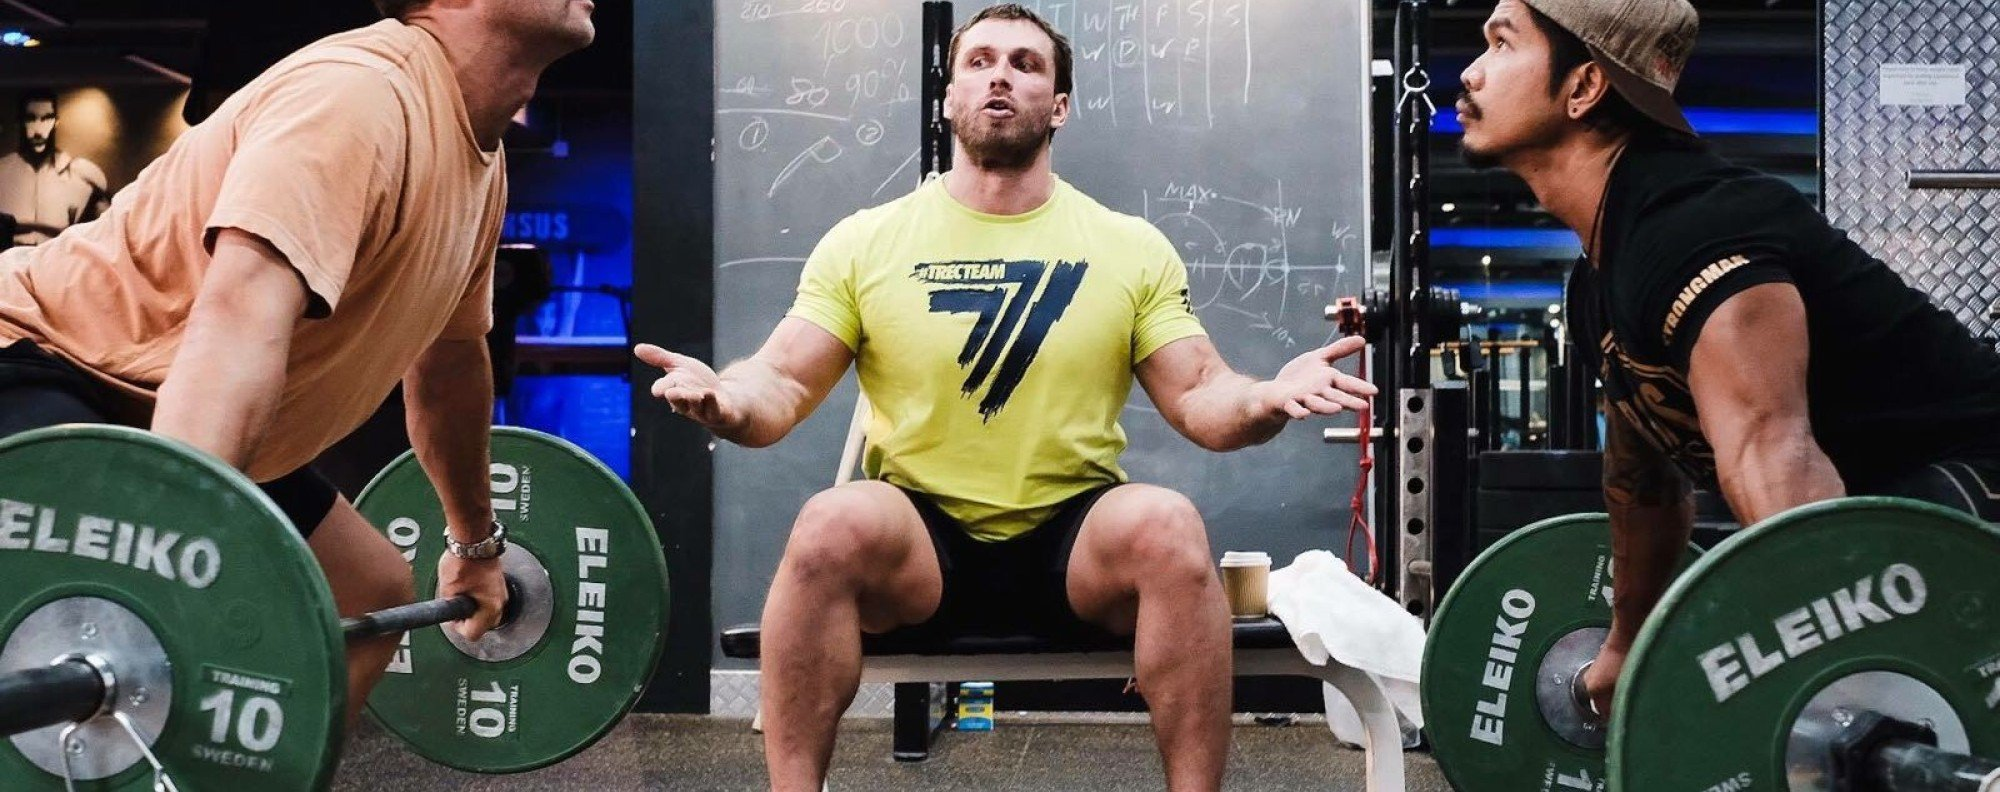 Dmitry Klokov teaches weightlifting at URSUS Fitness in Sai Ying Pun. Photo: Pan Peng